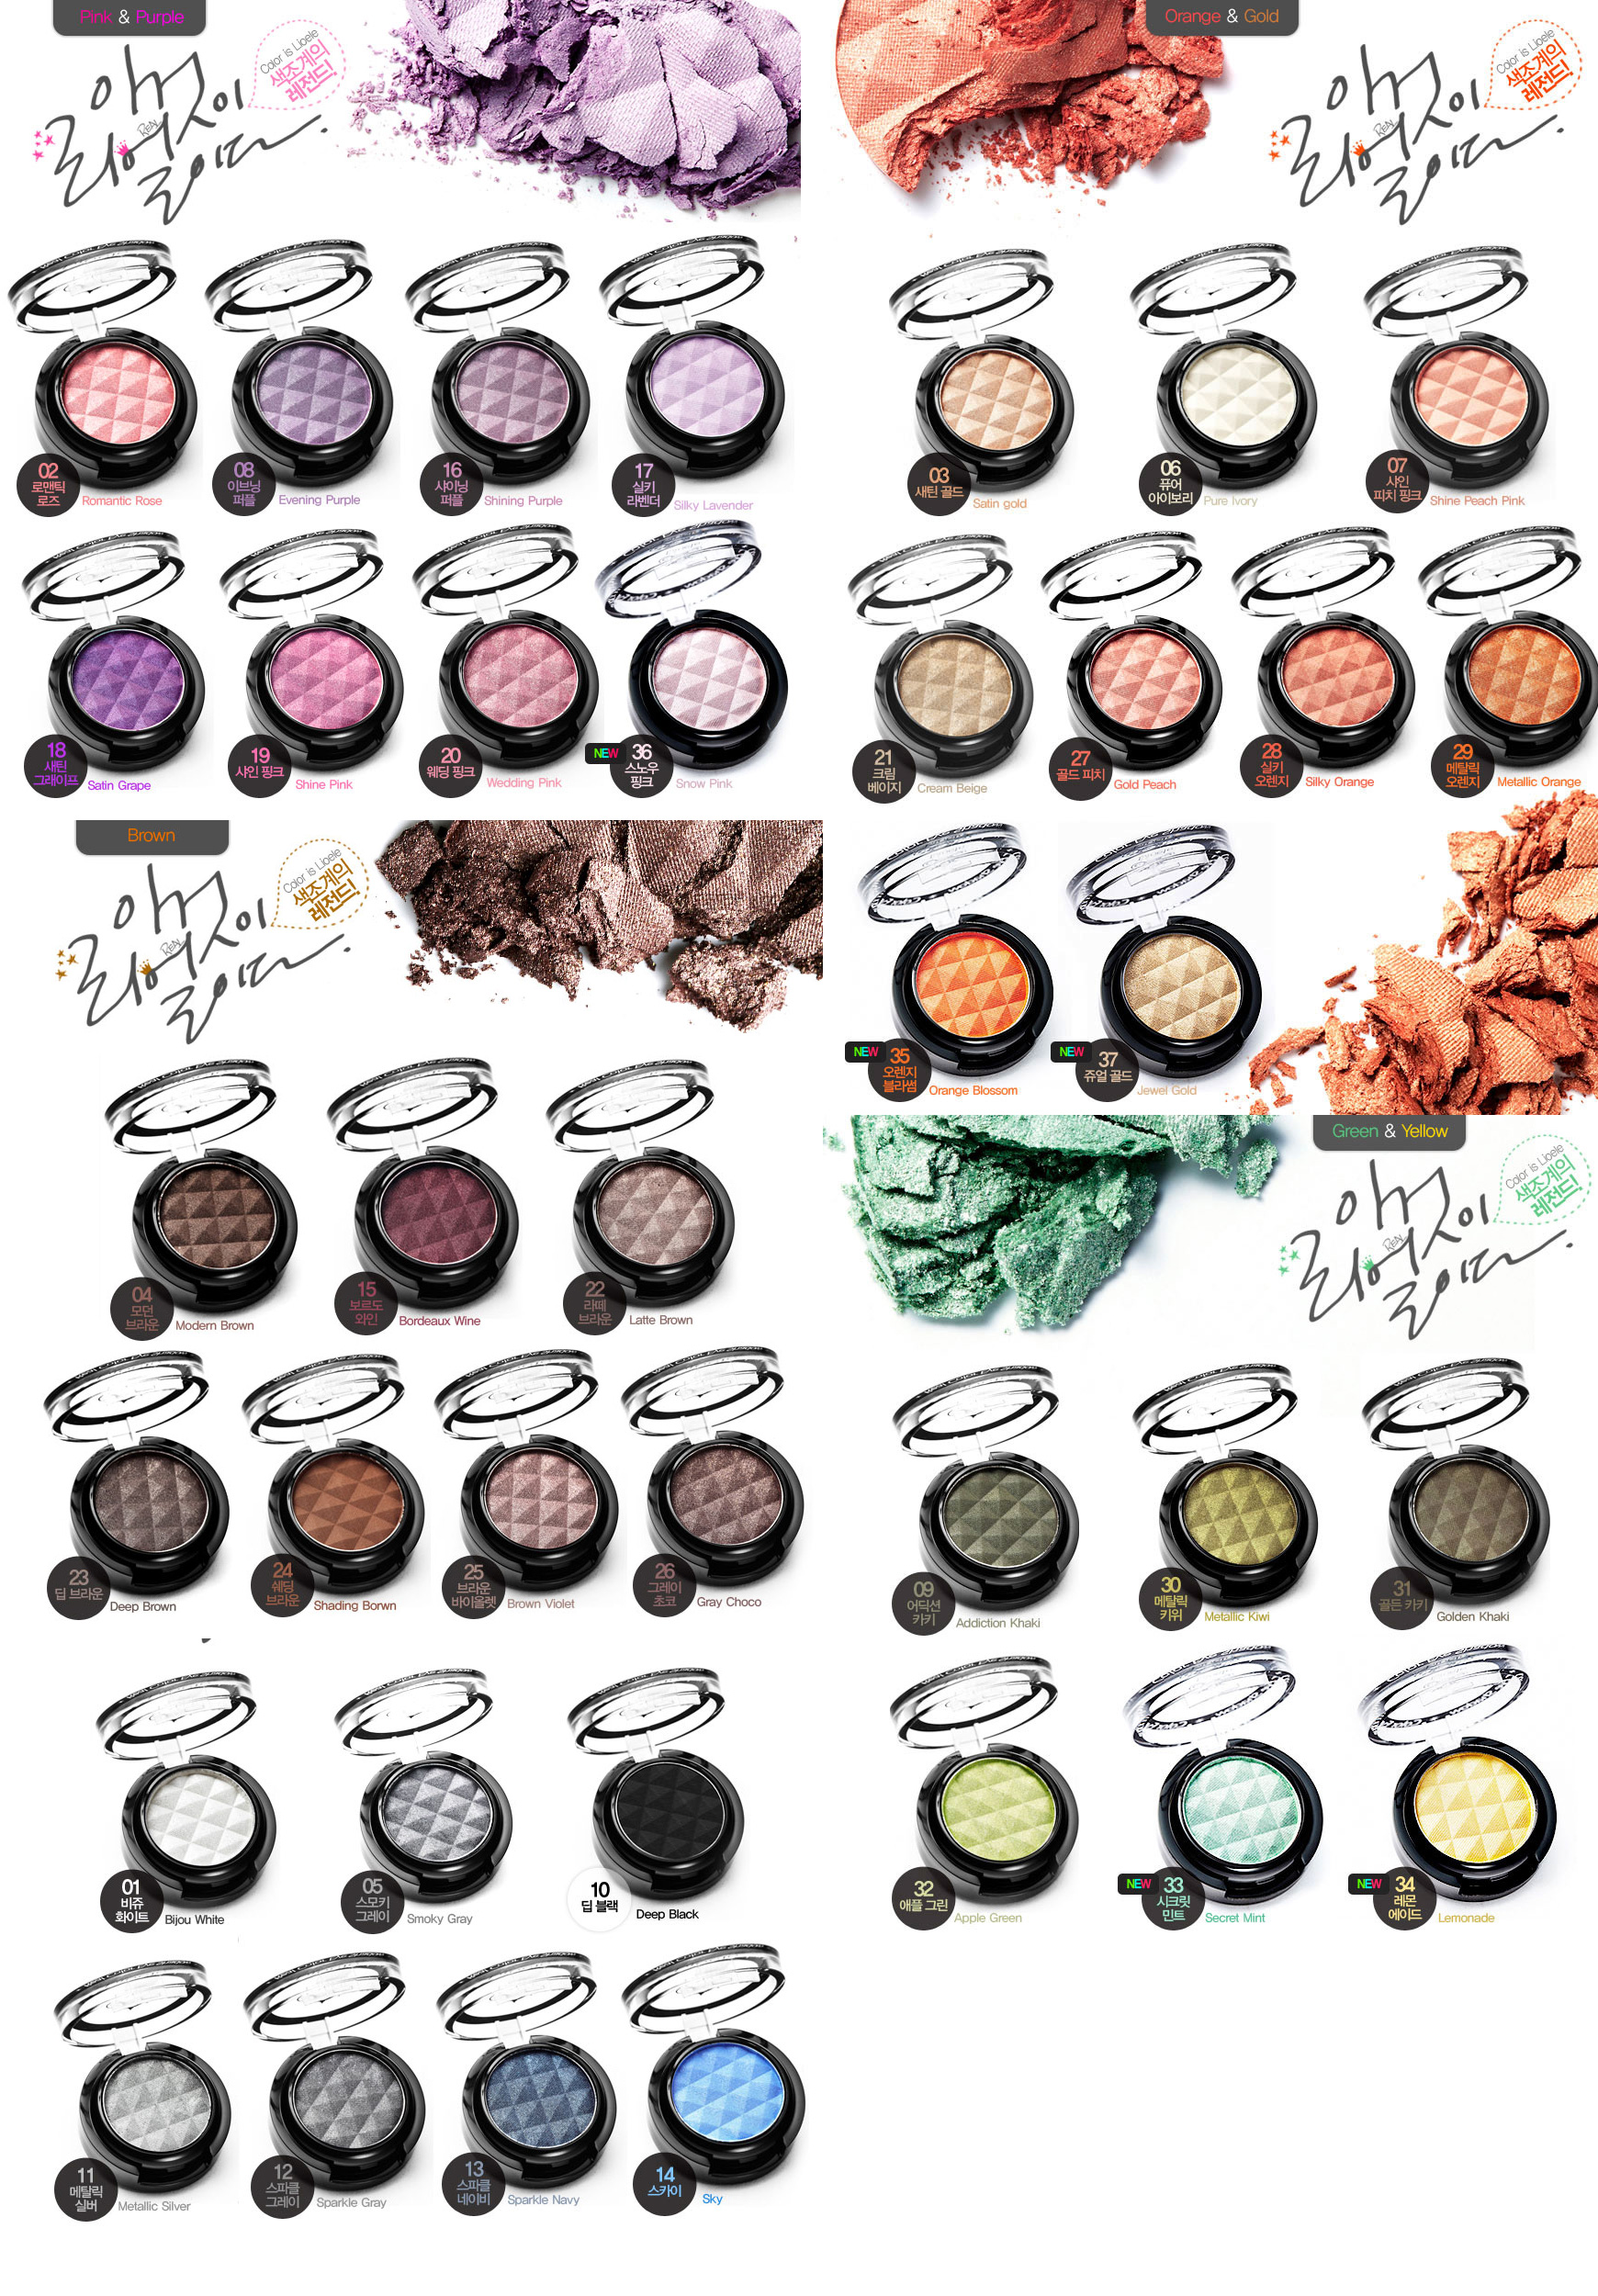 Gumtree-Doll-To-Doll-Cosmetics-Collaboration_8_Lioele-Eyeshadows